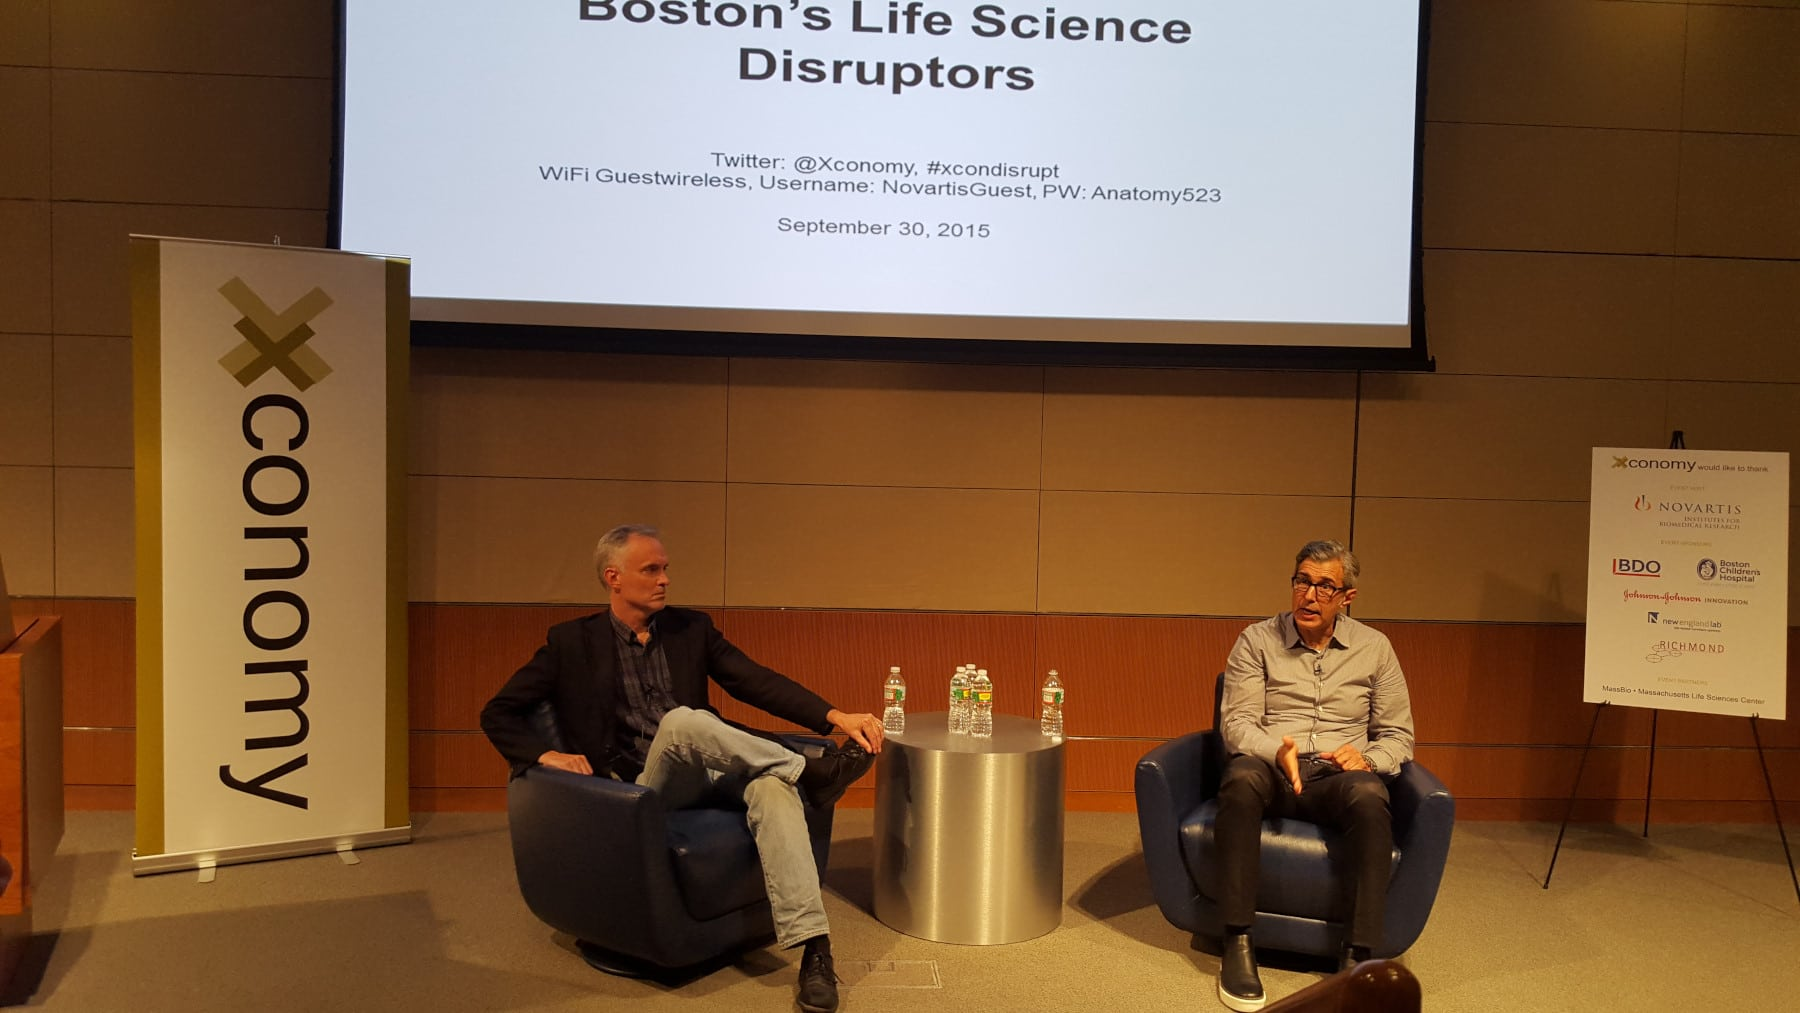 Boston's Life Science Disruptors